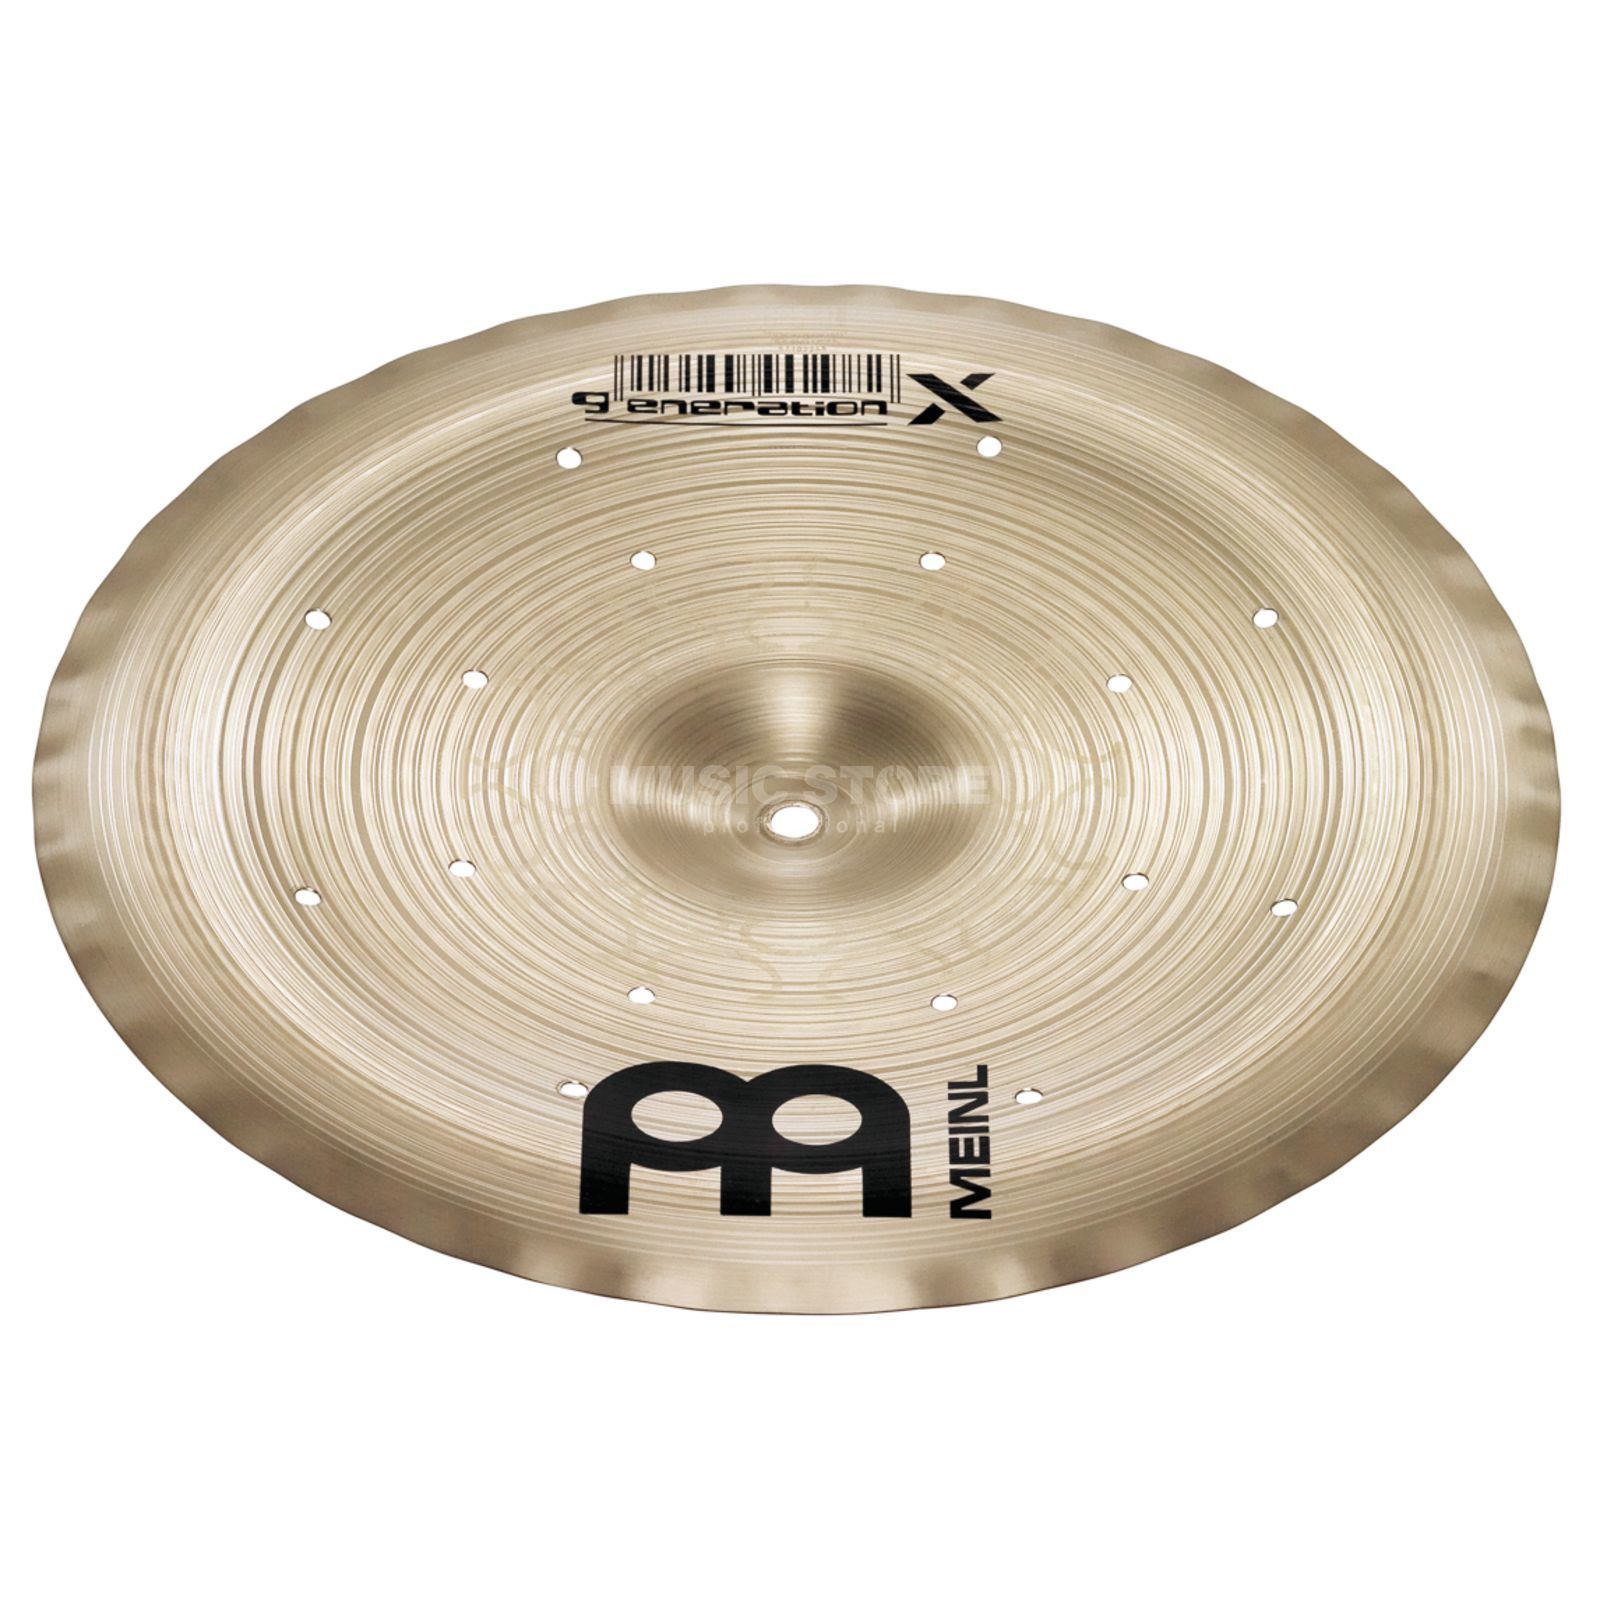 "Meinl Generation X Filter China 16"", GX-16FCH, B-Stock Zdjęcie produktu"